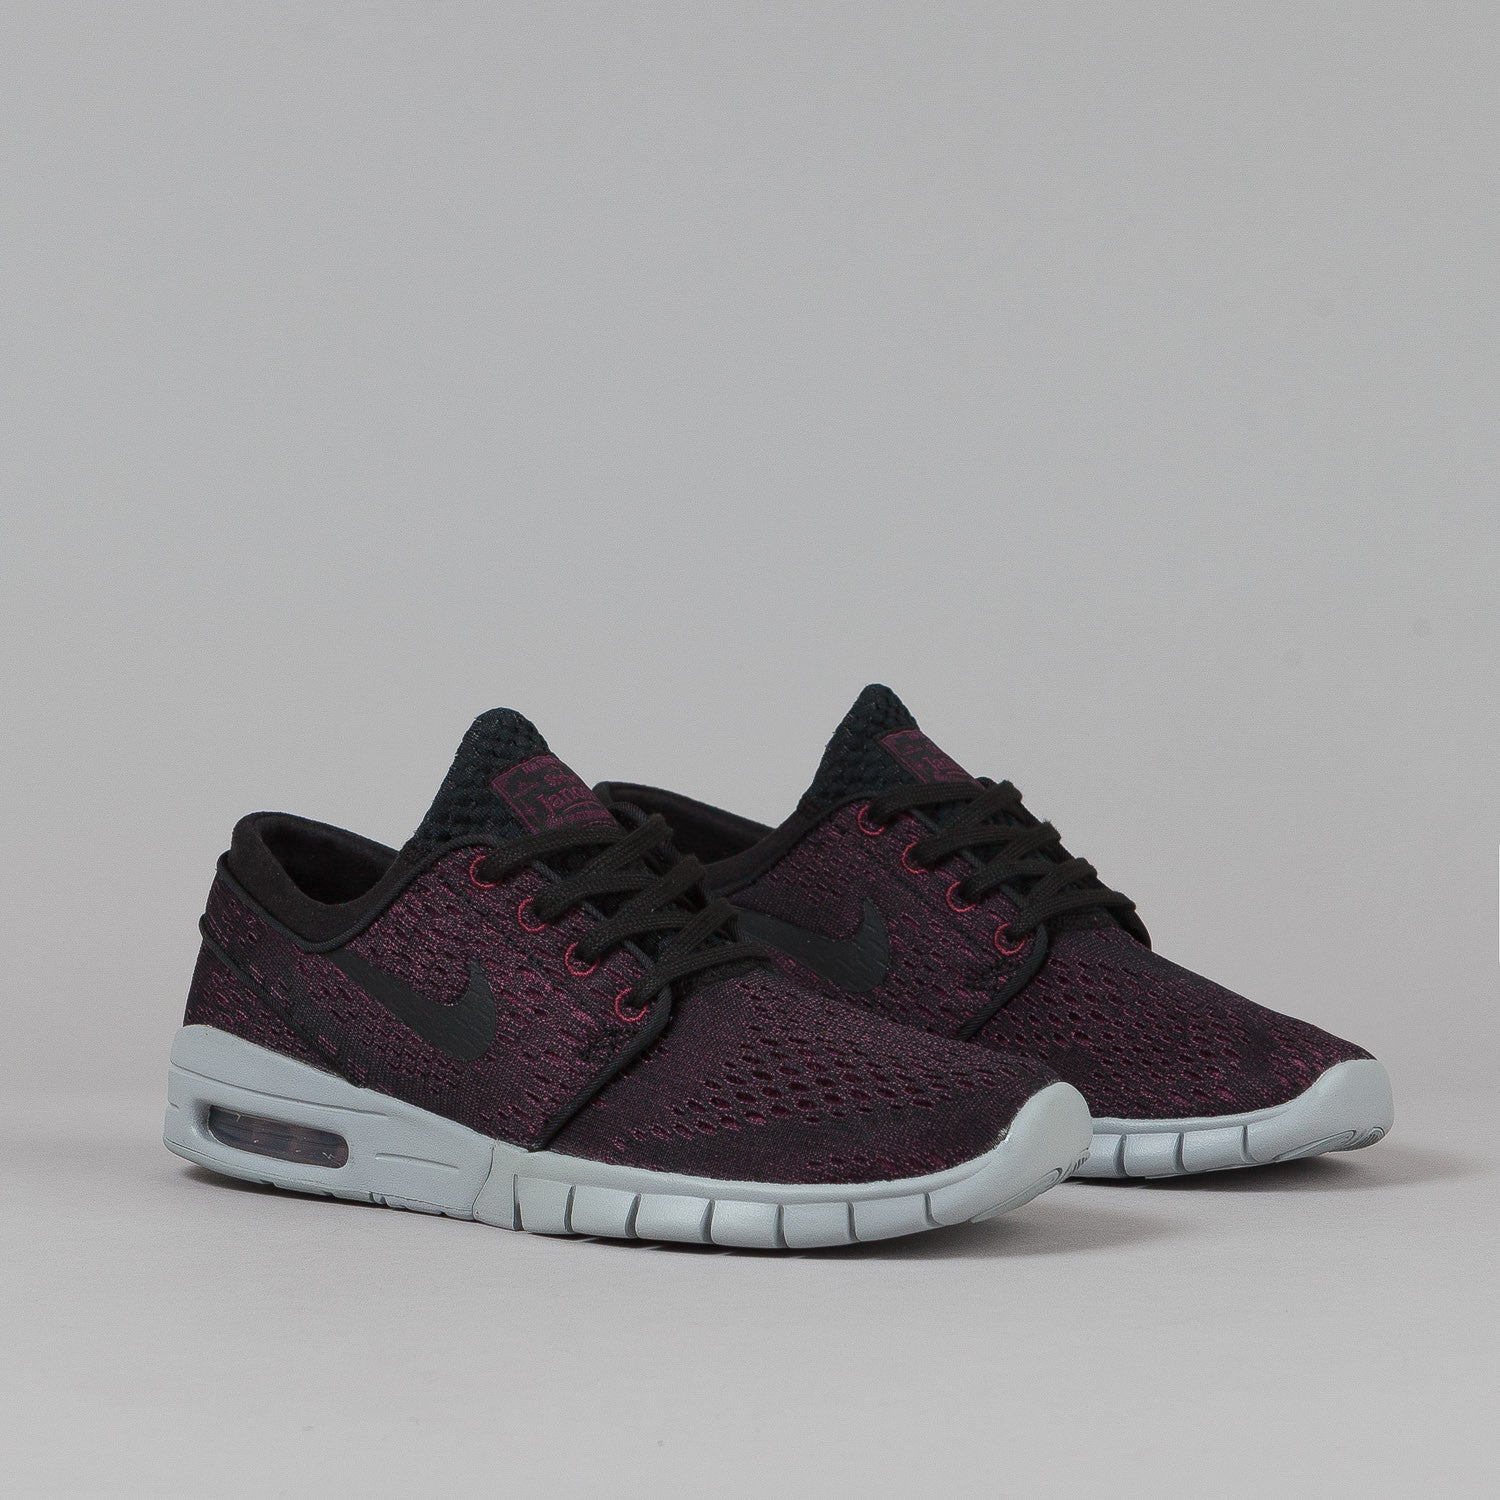 Nike SB Stefan Janoski Max Shoes Villain Red / Black - Black - Wolf Grey